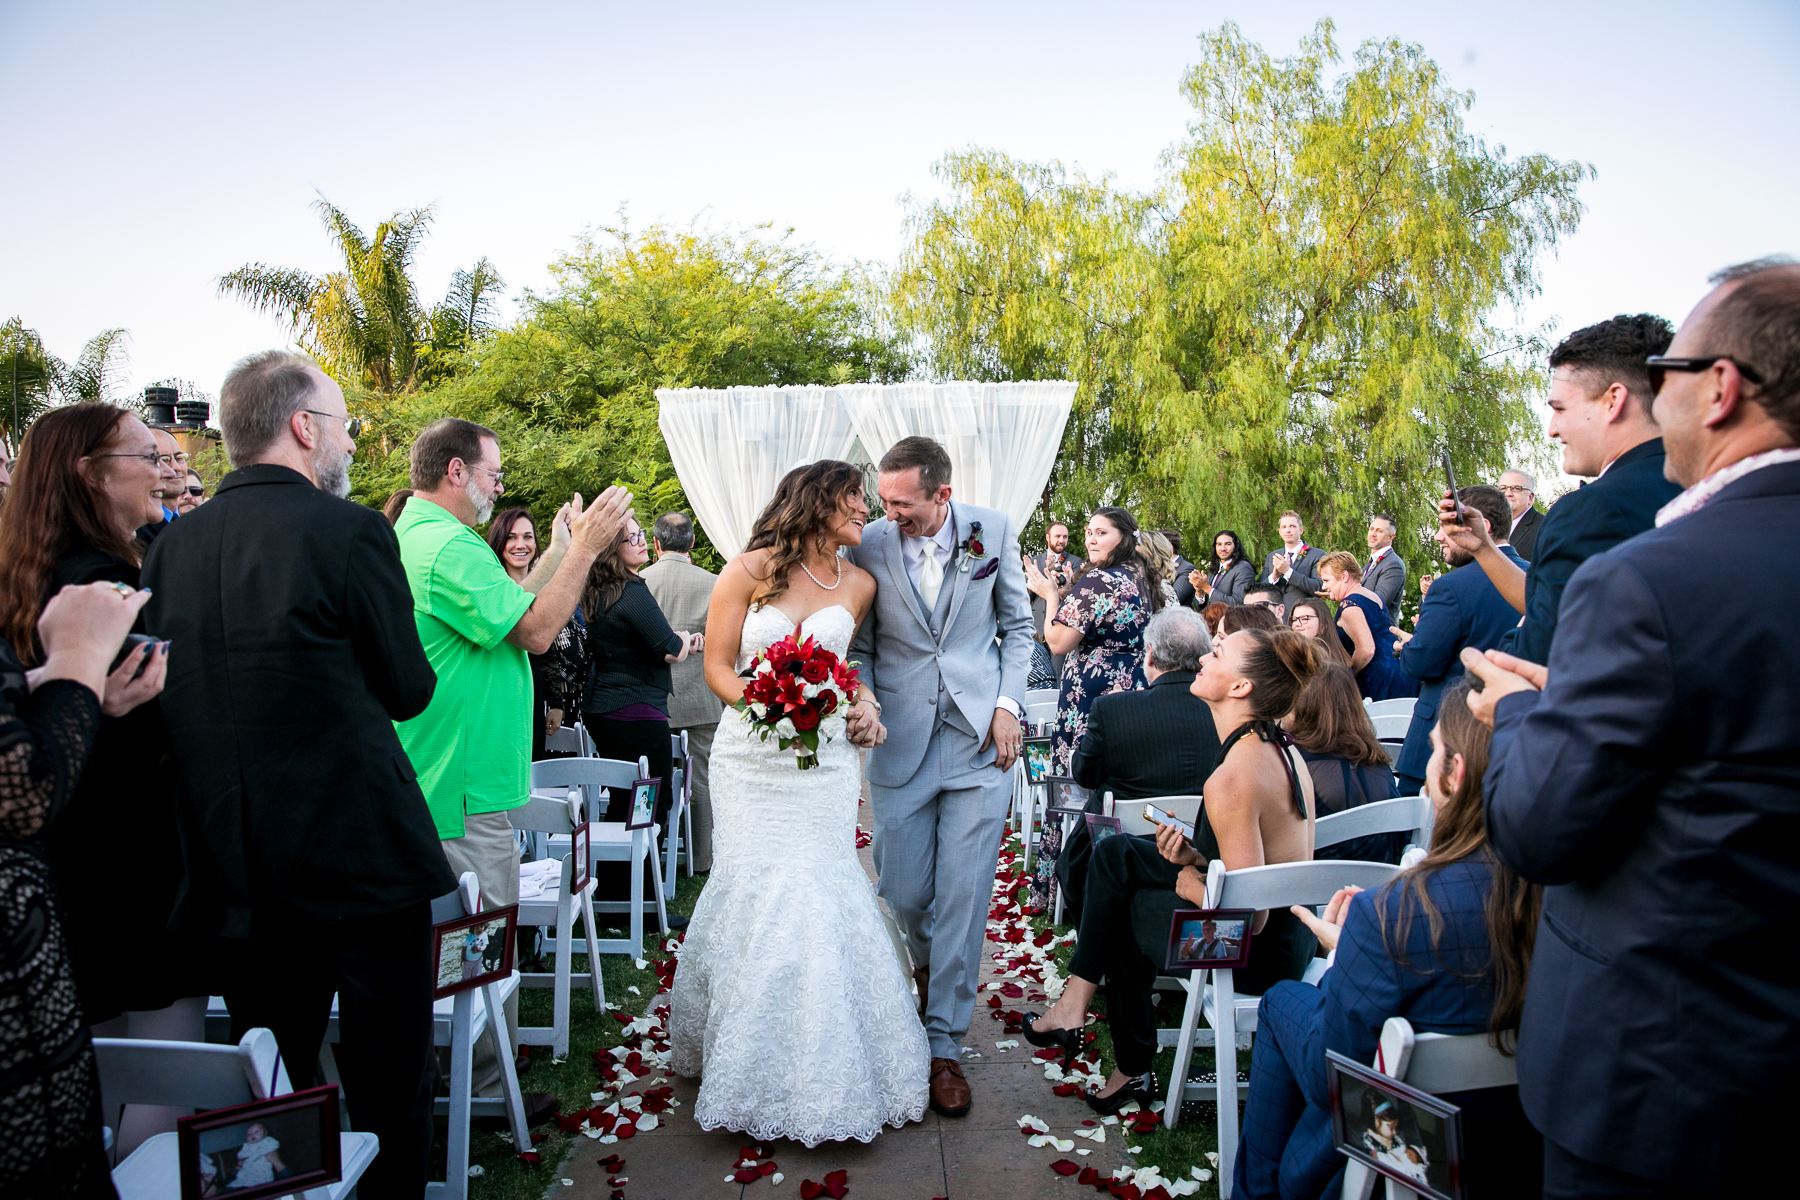 newly married couple walk down the aisle together at wedding in corona photographer